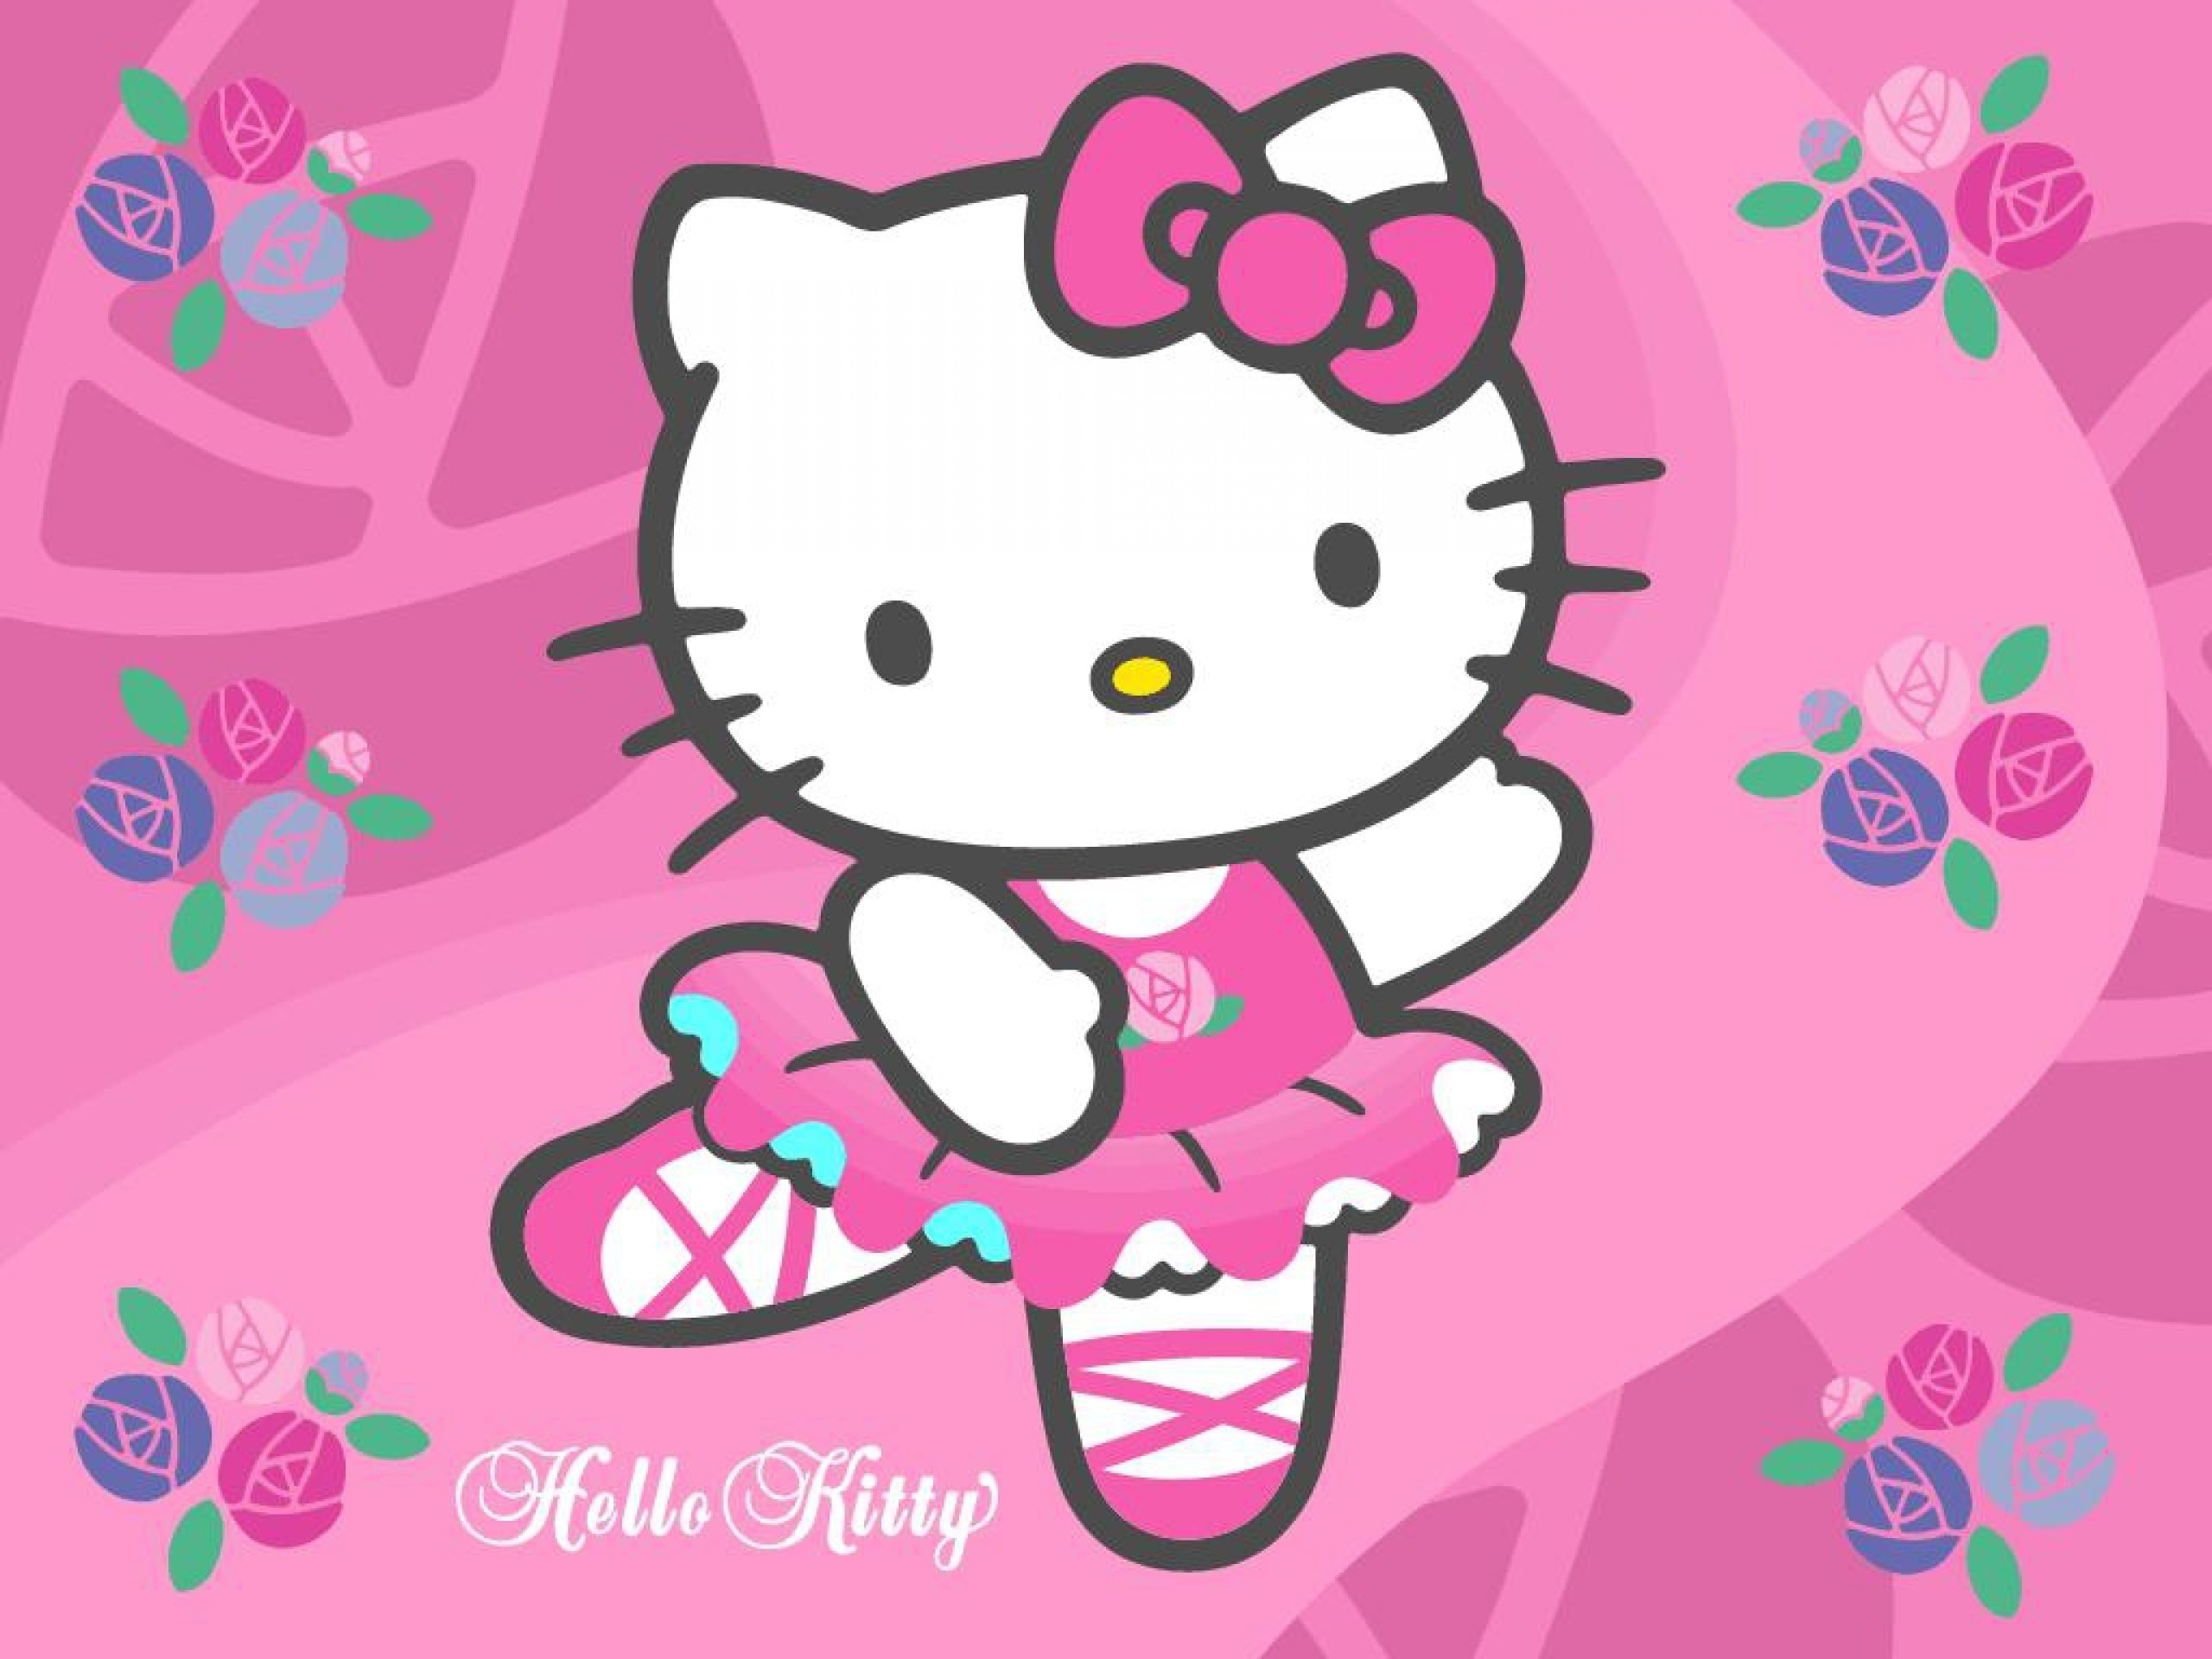 Beautiful Wallpaper Hello Kitty Samsung Galaxy - 929052-cute-wallpapers-of-hello-kitty-2560x1920-samsung-galaxy  Pic_17170.jpg